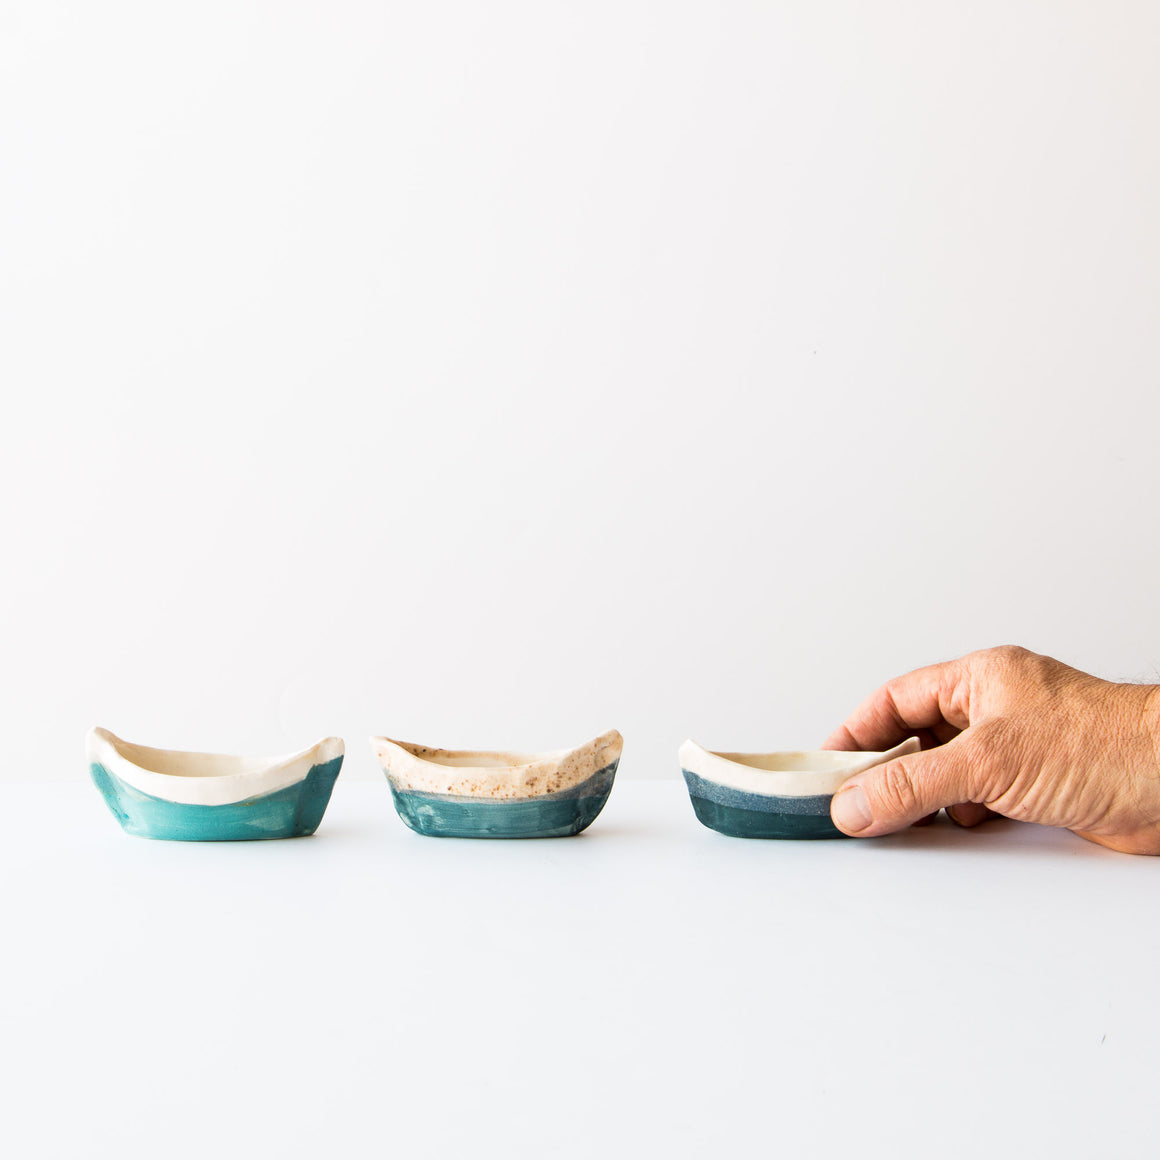 Small Hand Shaped White & Blue Ceramics Boats By Aunt Magda- Sold By Chic & Basta